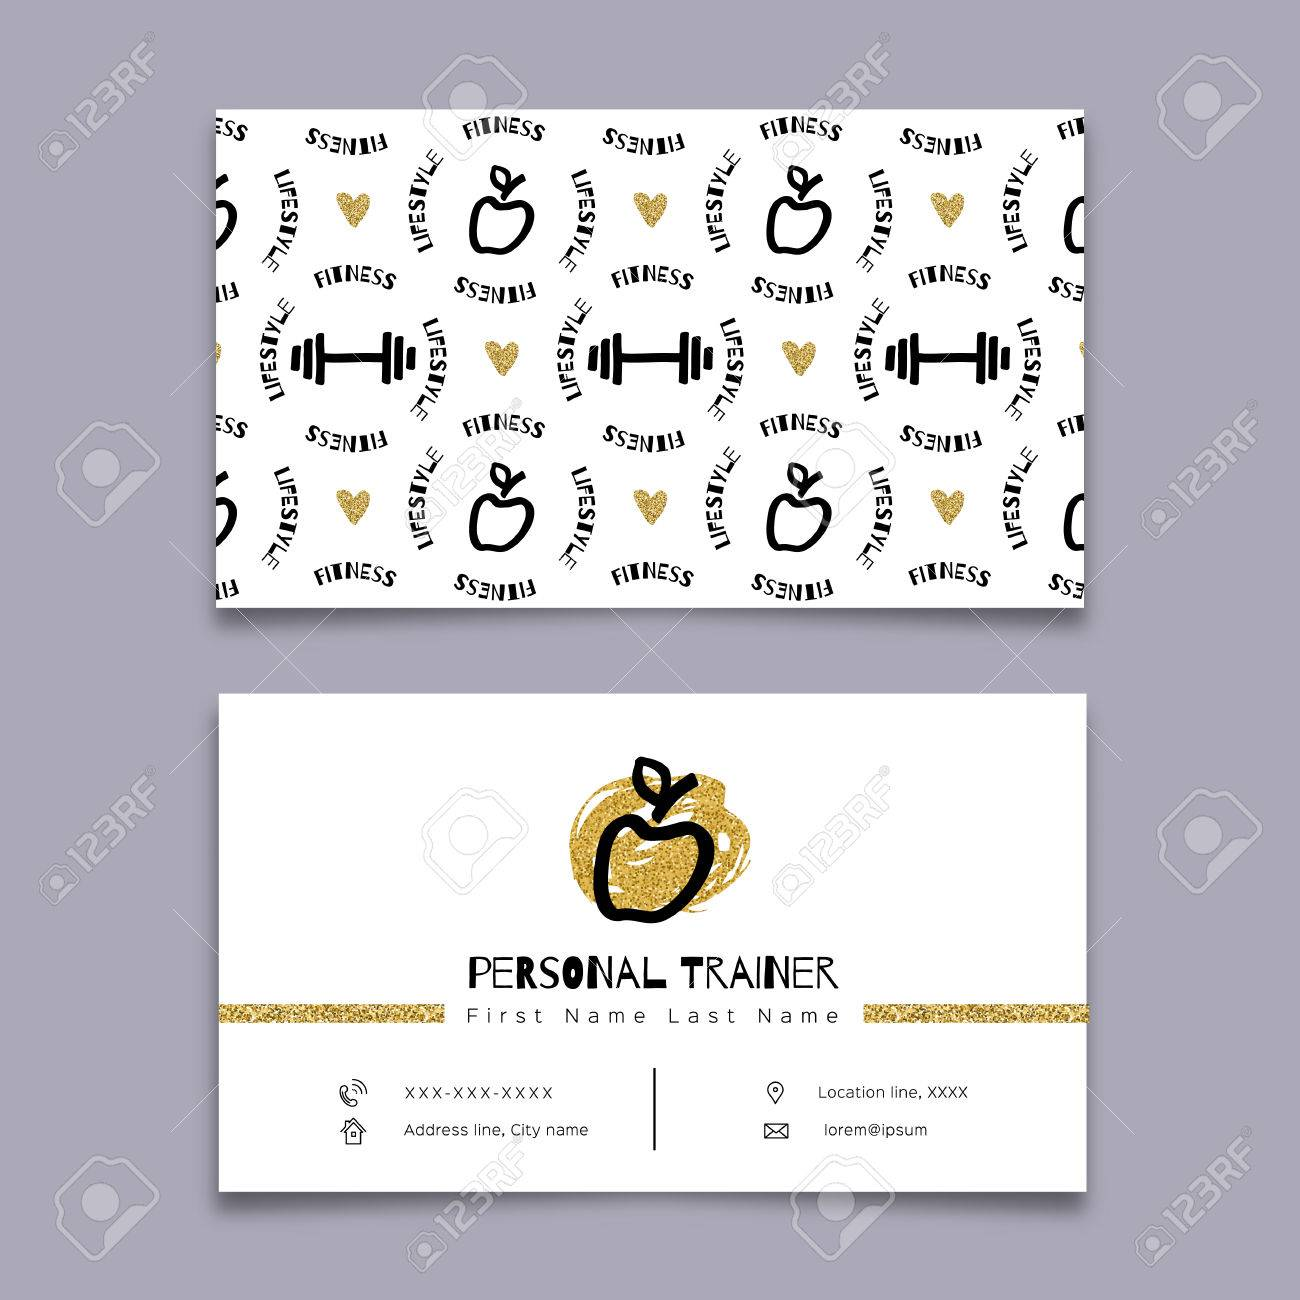 Personal trainer fitness instructor sports business card sketch personal trainer fitness instructor sports business card sketch black marker hand drawn colourmoves